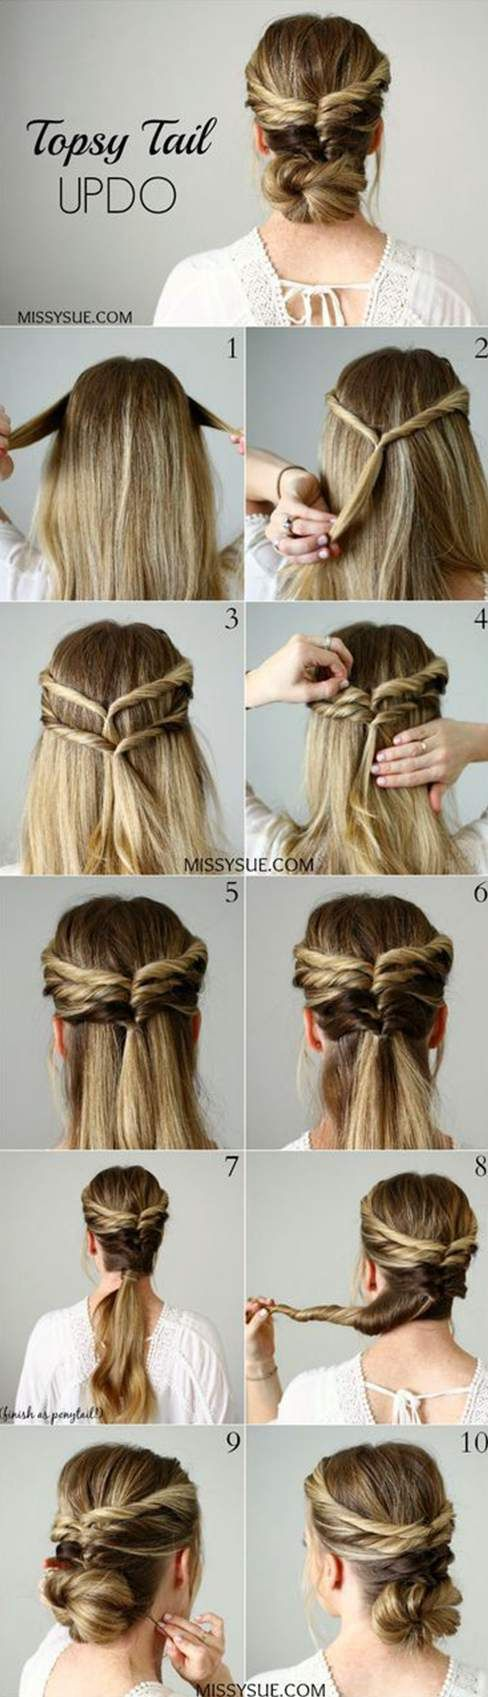 easy 5 minute hairstyles for long hair | hairstyles for long